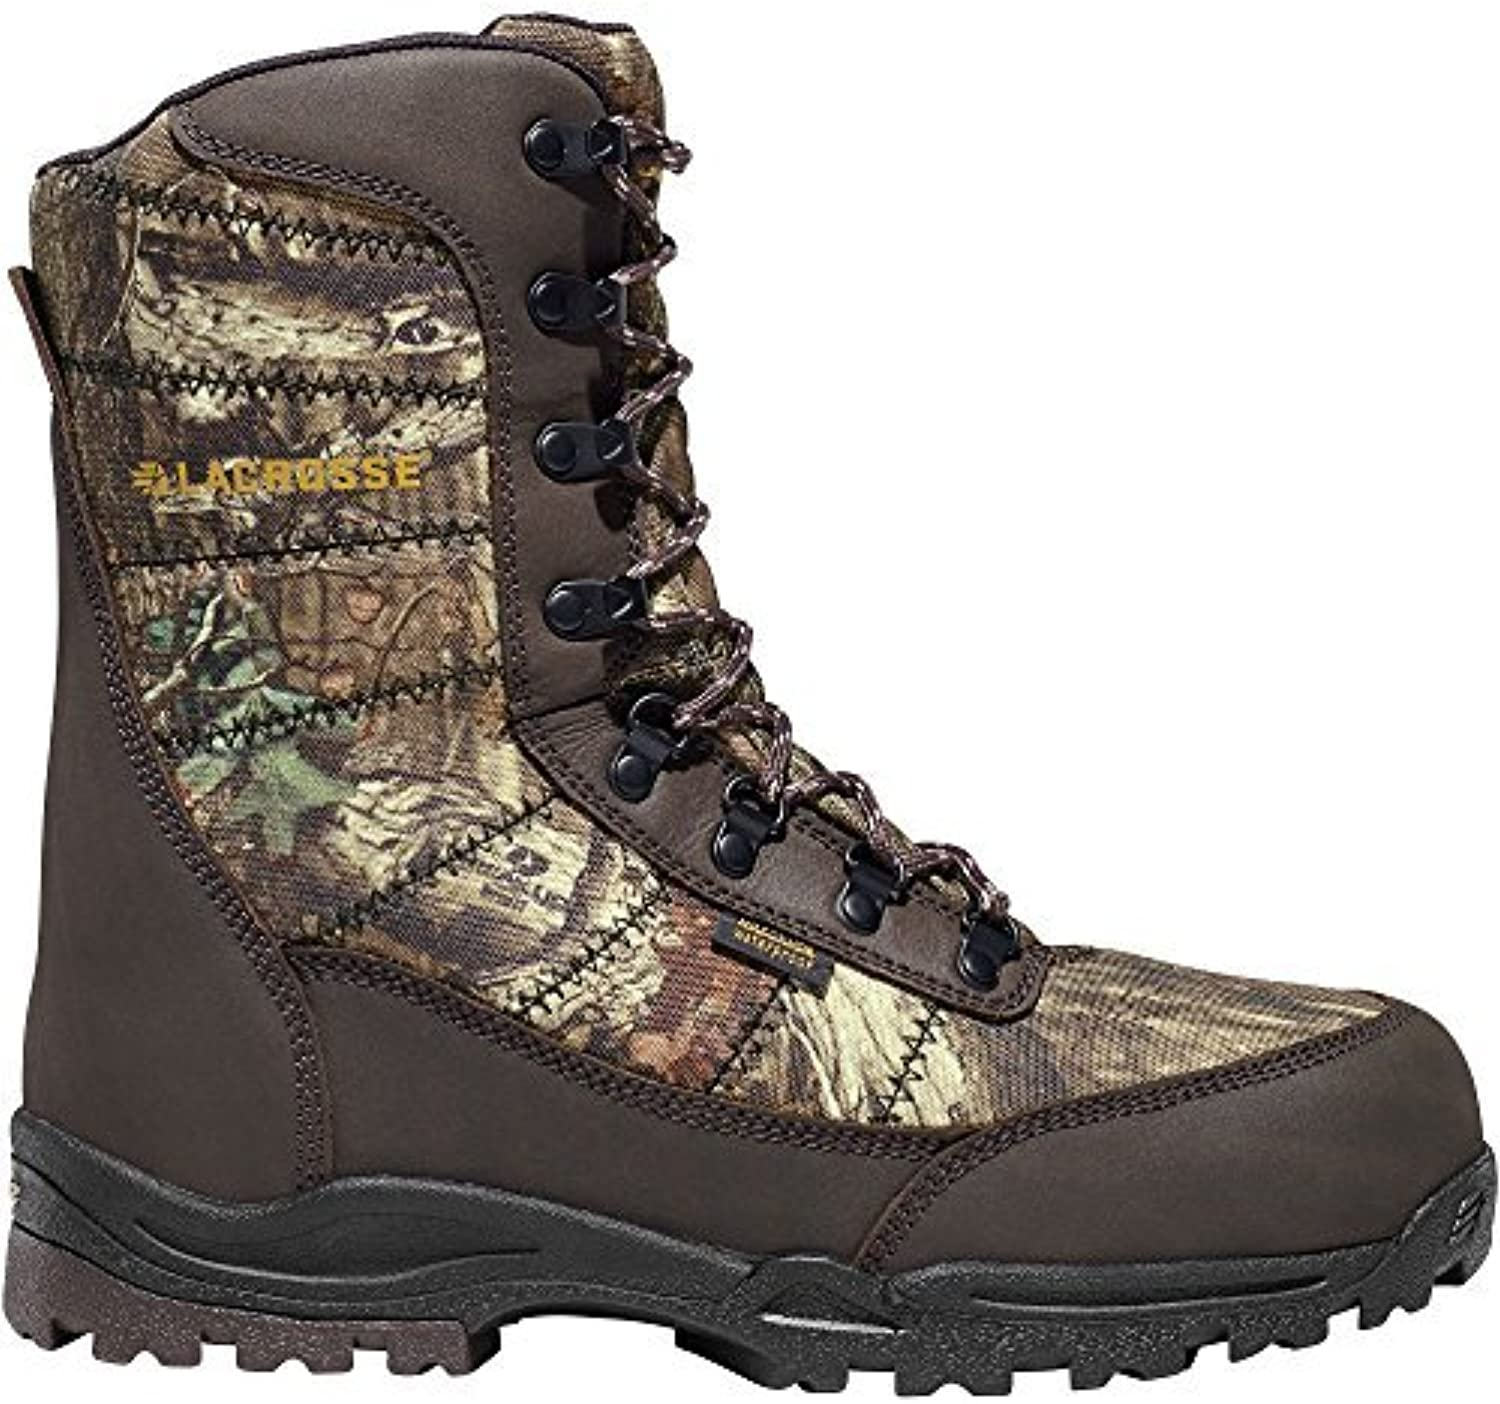 LACROSSE Silencer 8  Height Mossy Oak Break-Up Infinity 800G (541017)  Waterproof   Insulated Modern Comfortable Hunting Combat Boot Brown